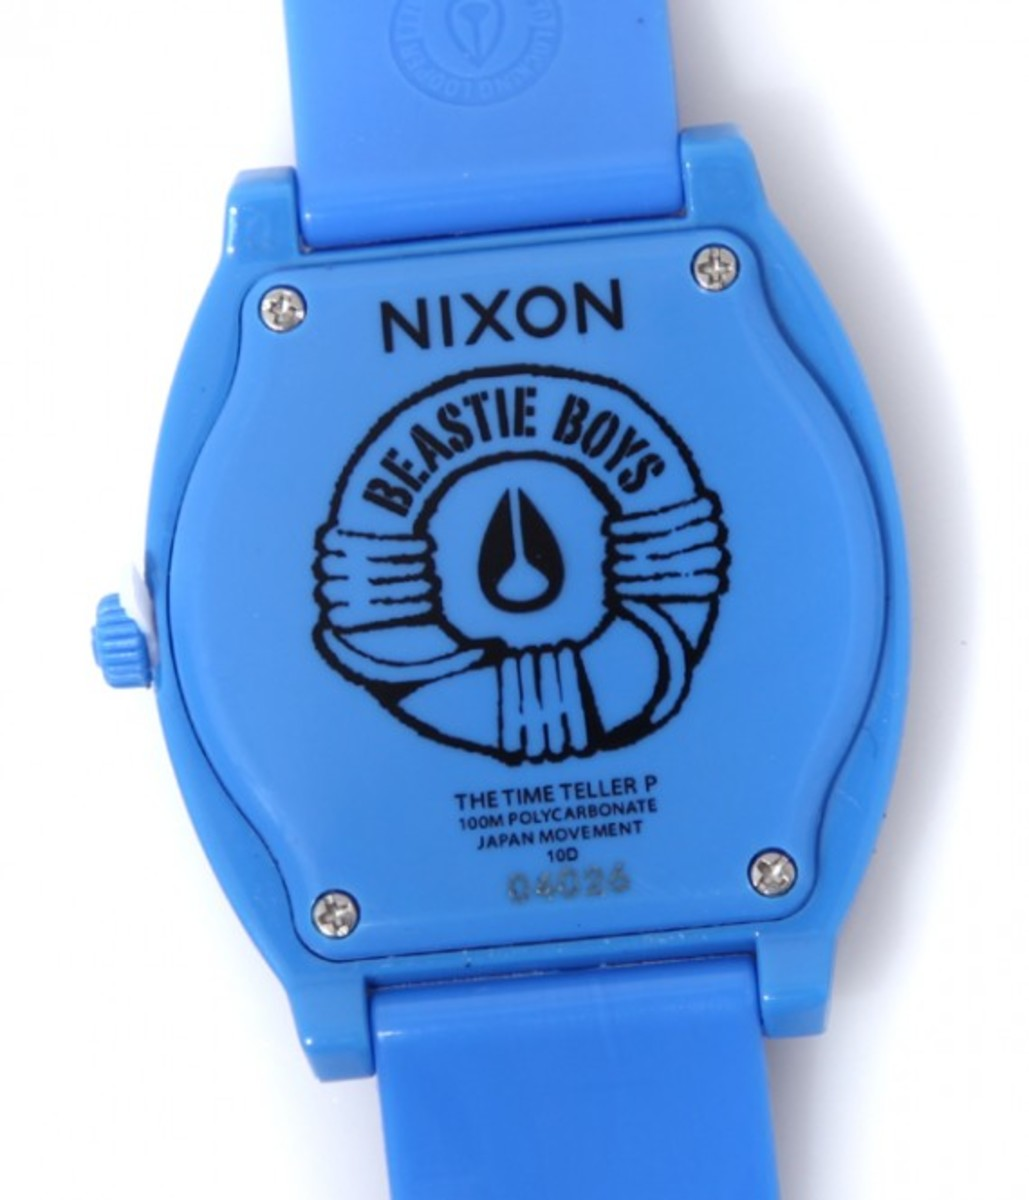 beastie-boys-nixon-time-teller-p-blue-05